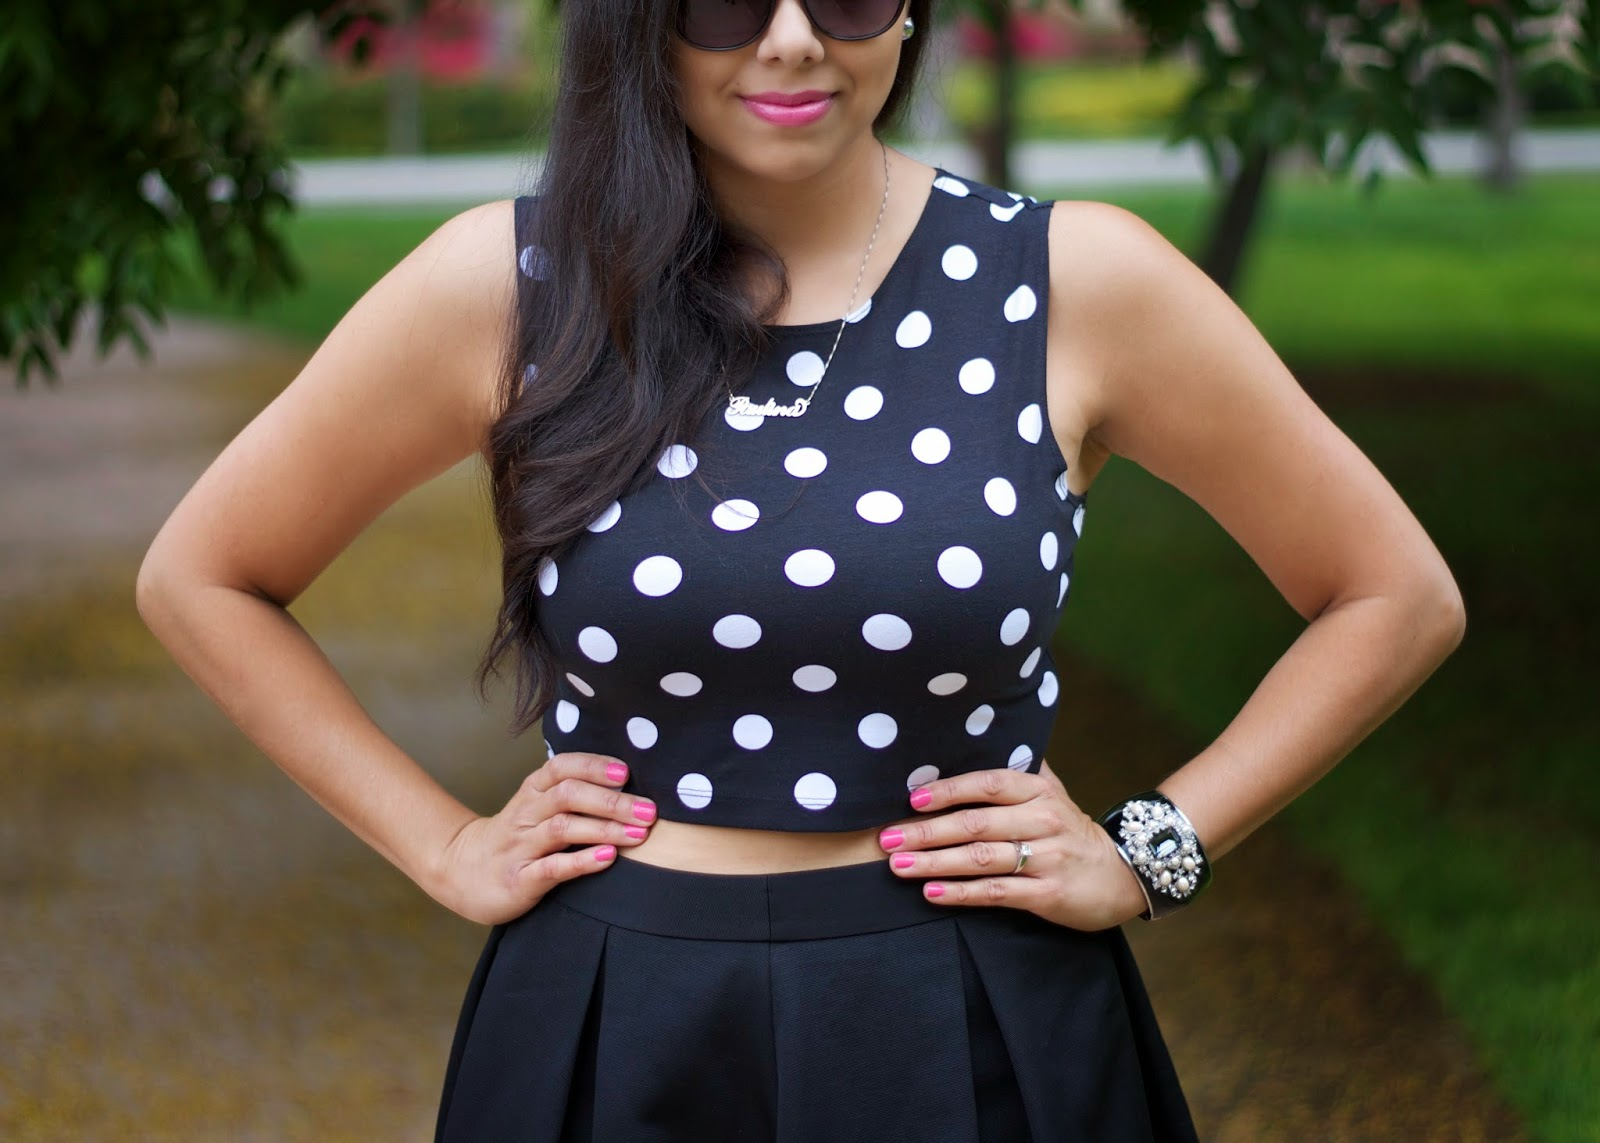 Pink Nails with all black outfit, Ann Taylor elegant cuff, polka dot crop top with accessories, black white dotted outfit details